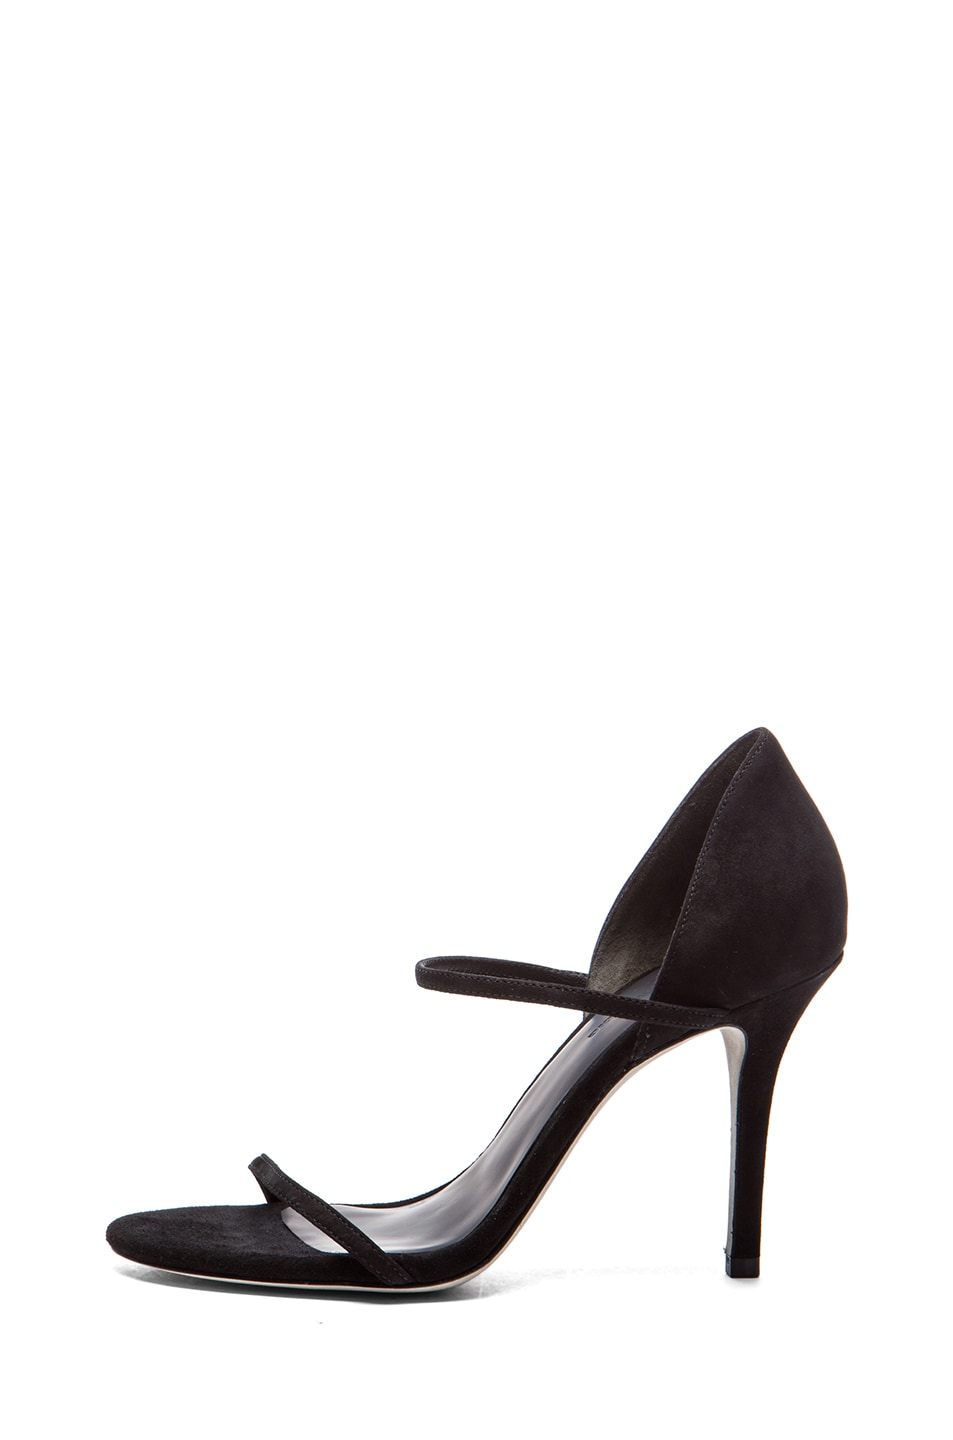 Image 1 of Alexander Wang Stasya Suede Heels in Black